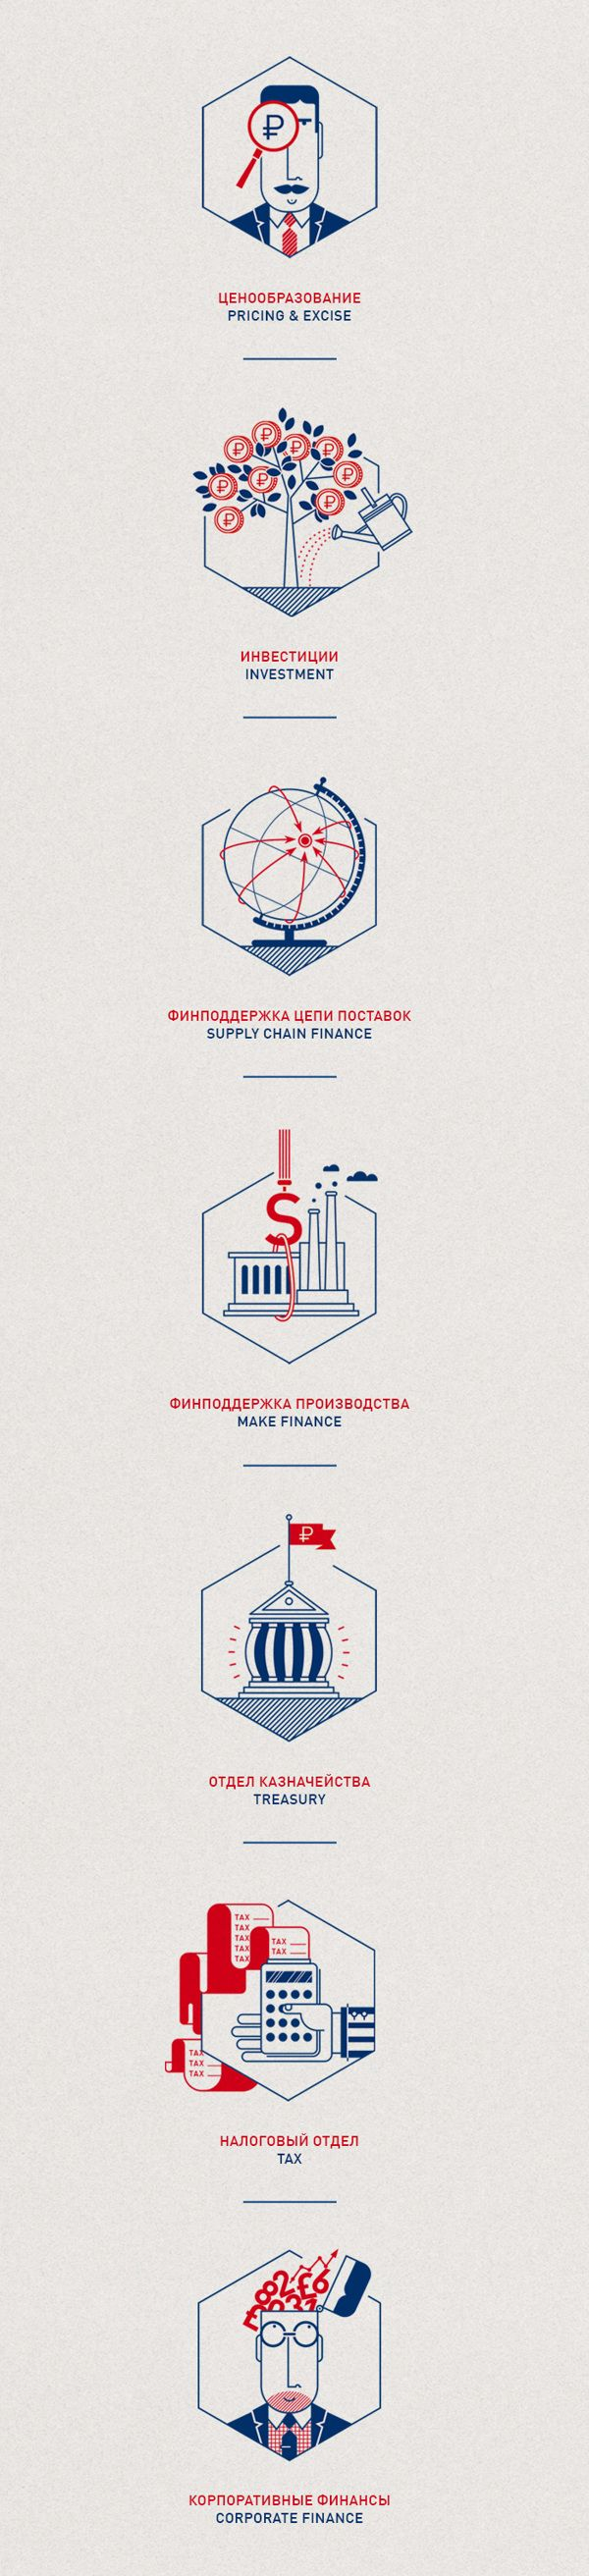 Financial Icons by Olja Ilyushchanka, via Behance